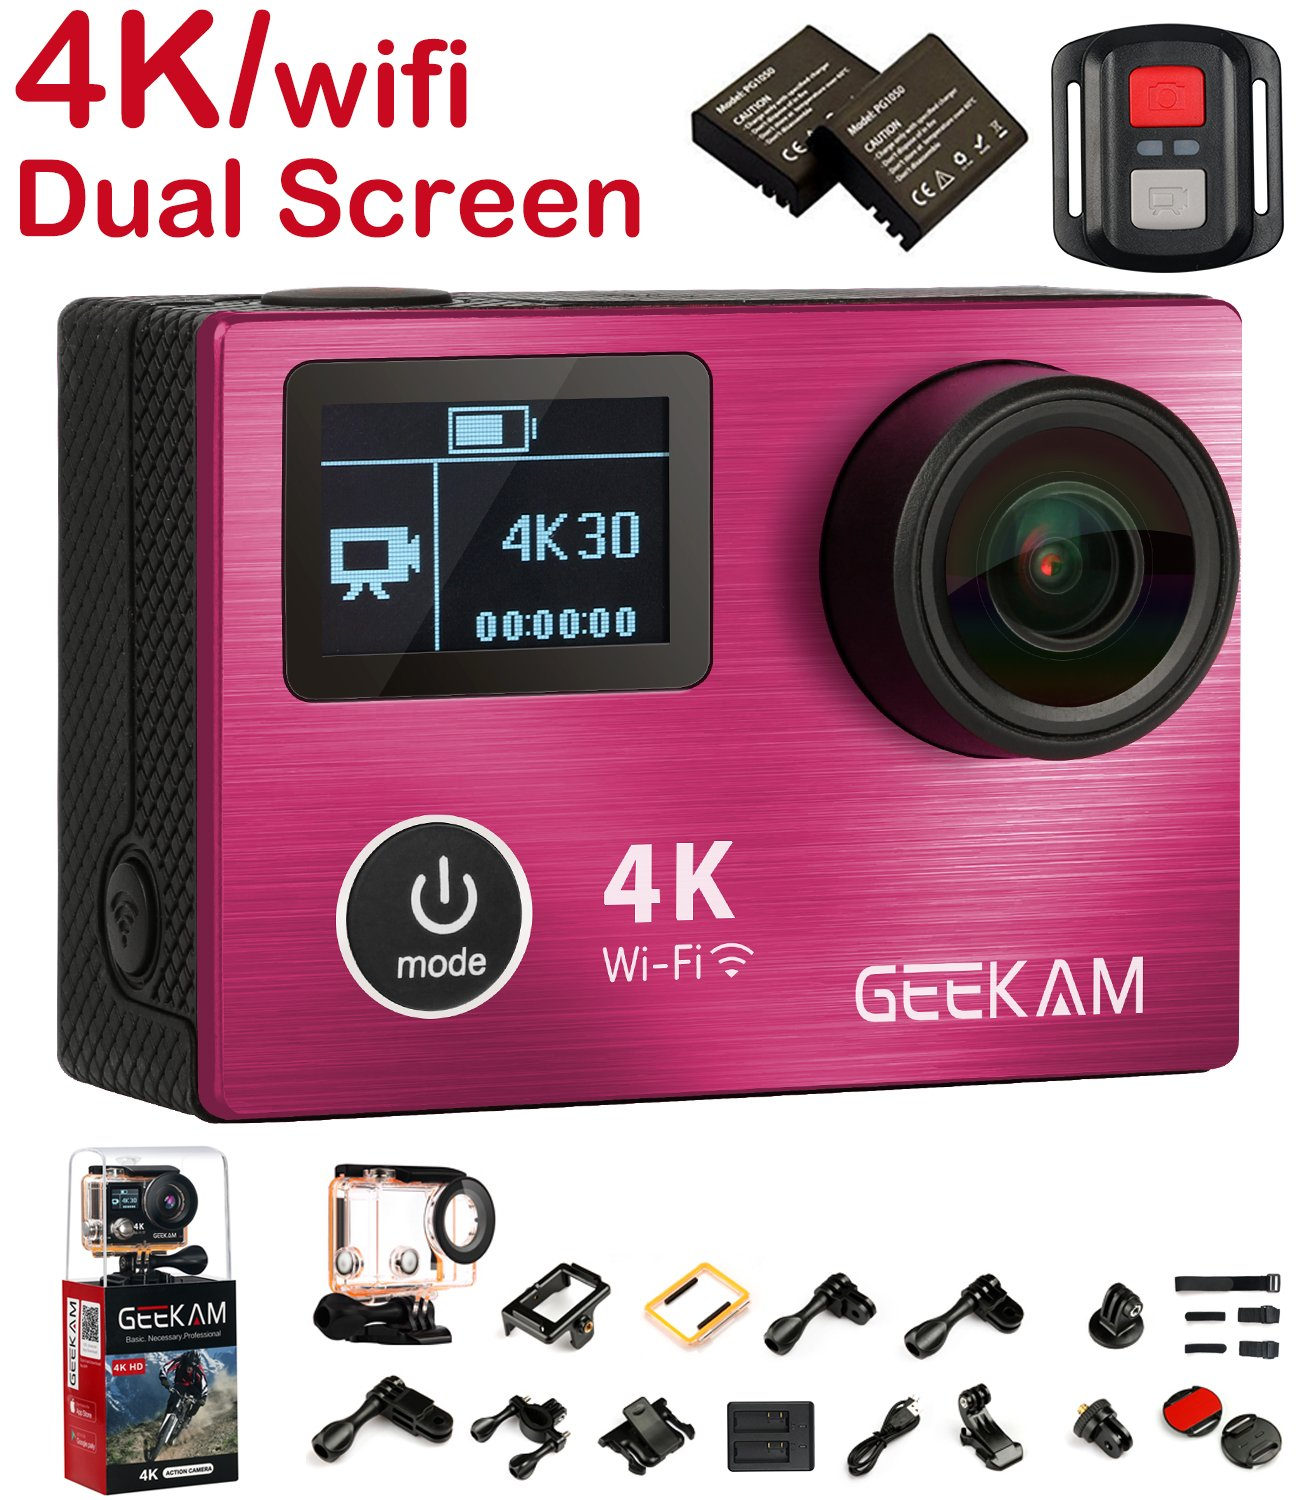 Action Camera 4K, 4K Action Camera Waterproof with Dual Screen Aluminium Alloy Front Cover Panasonic CMOS Wifi 2.4G Remote Control HDMI 170 Wide Angle